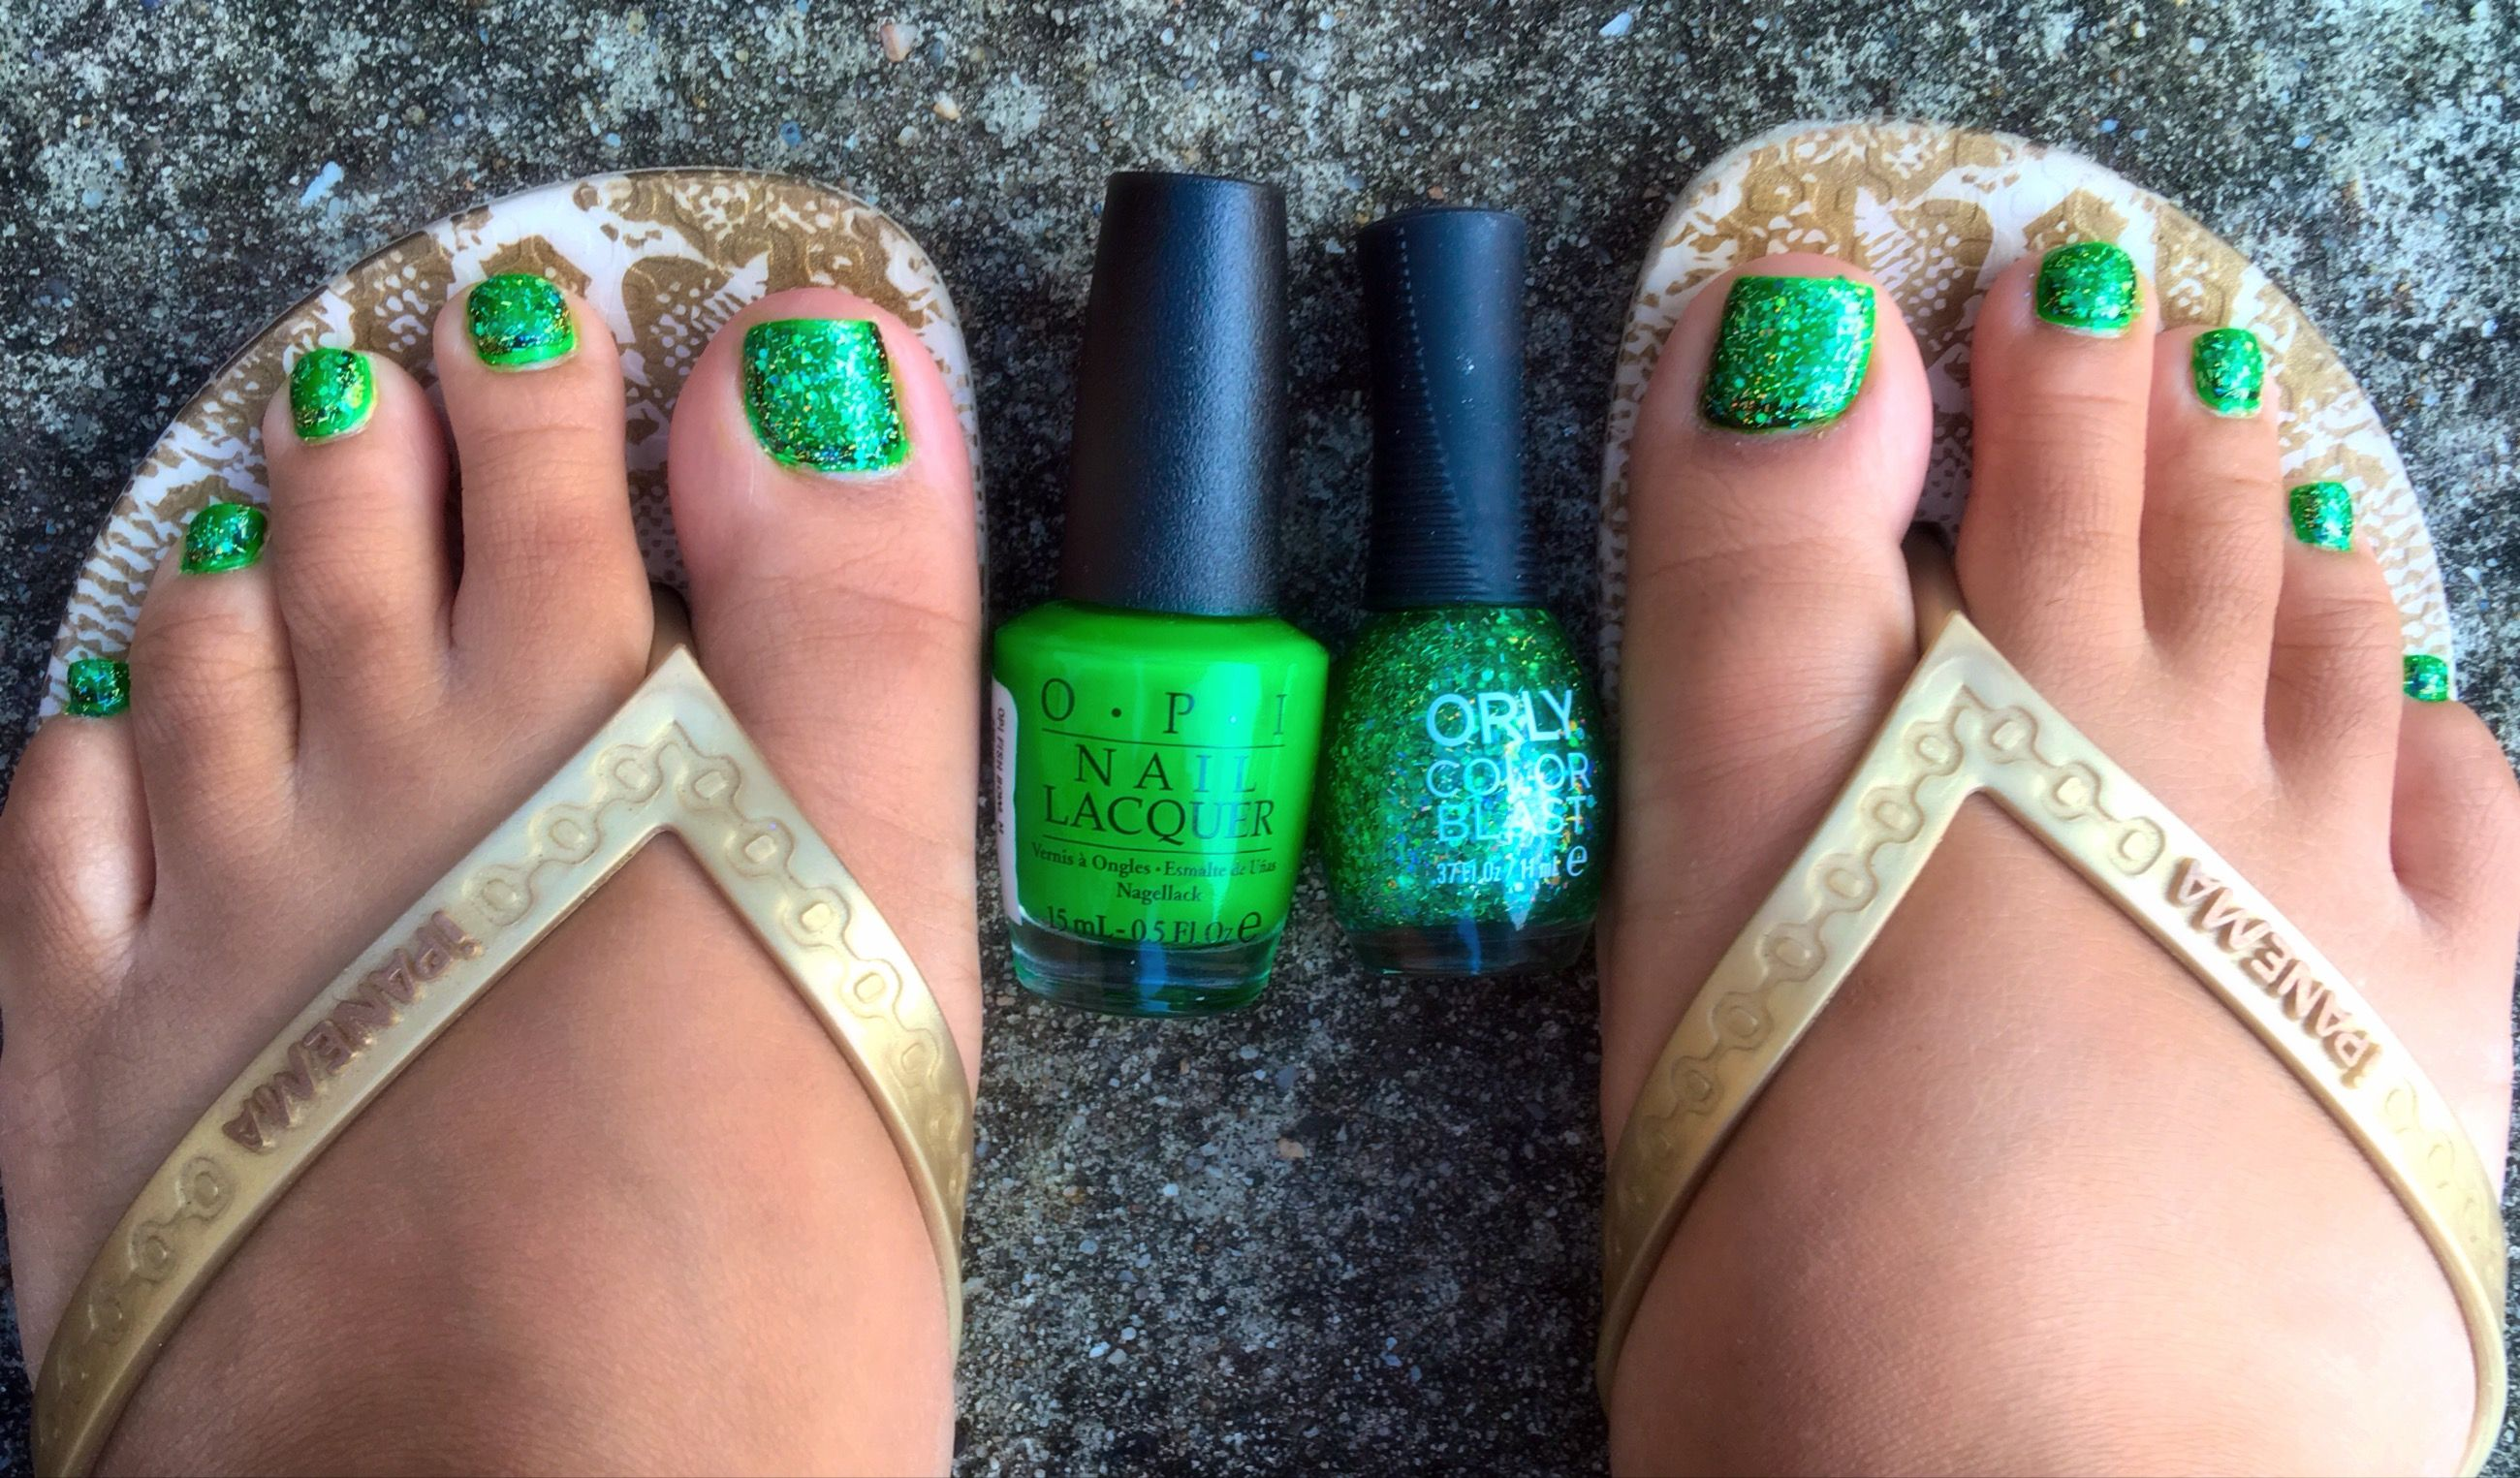 OPI Green Come True, Orly Color Blast Lime Green Chunky Glitter ...